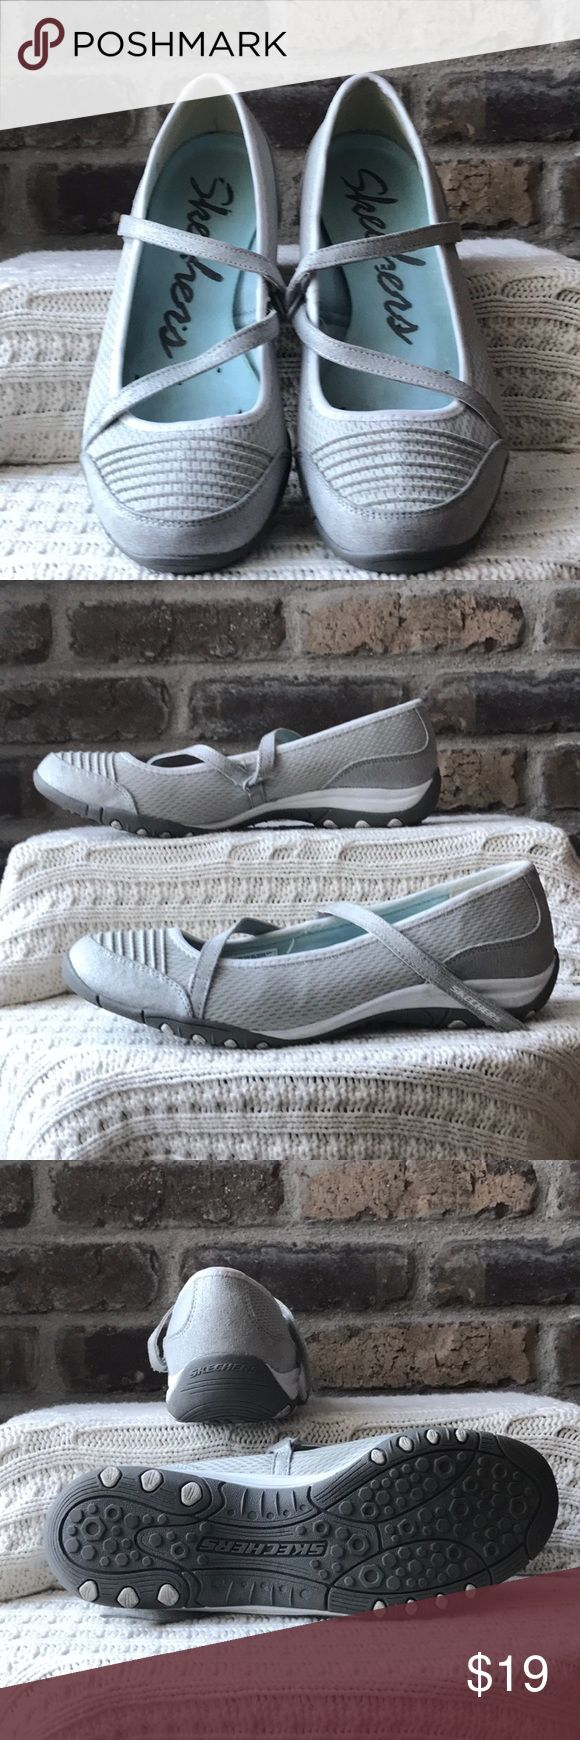 Skechers Women's size 9 gray and white Skechers. They have barn but are in good condition Skechers Shoes Flats & Loafers